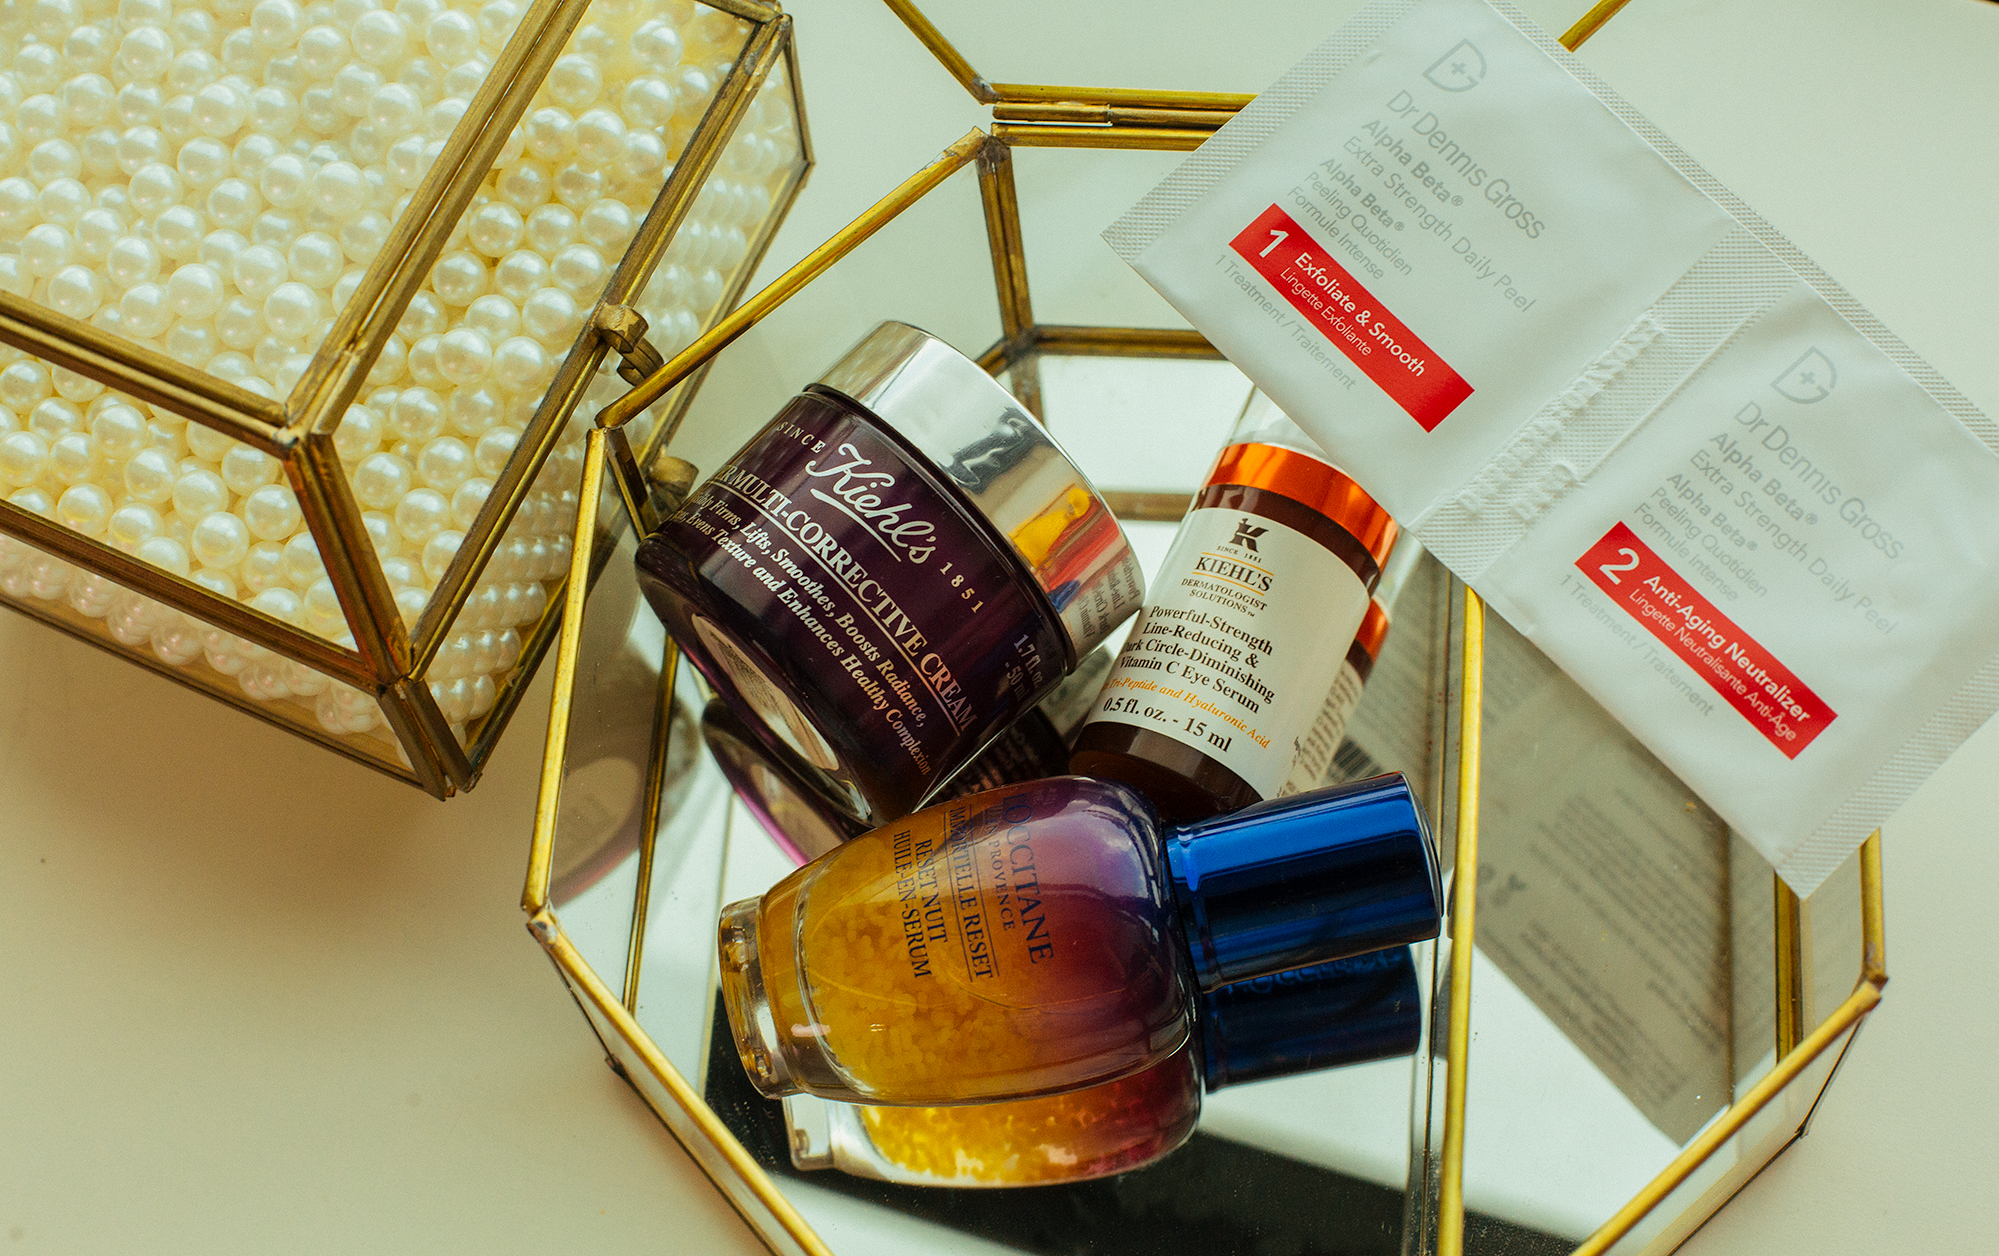 Treating Myself To Cult-Favourite Instant Skin Saviours — Do They Really Work?